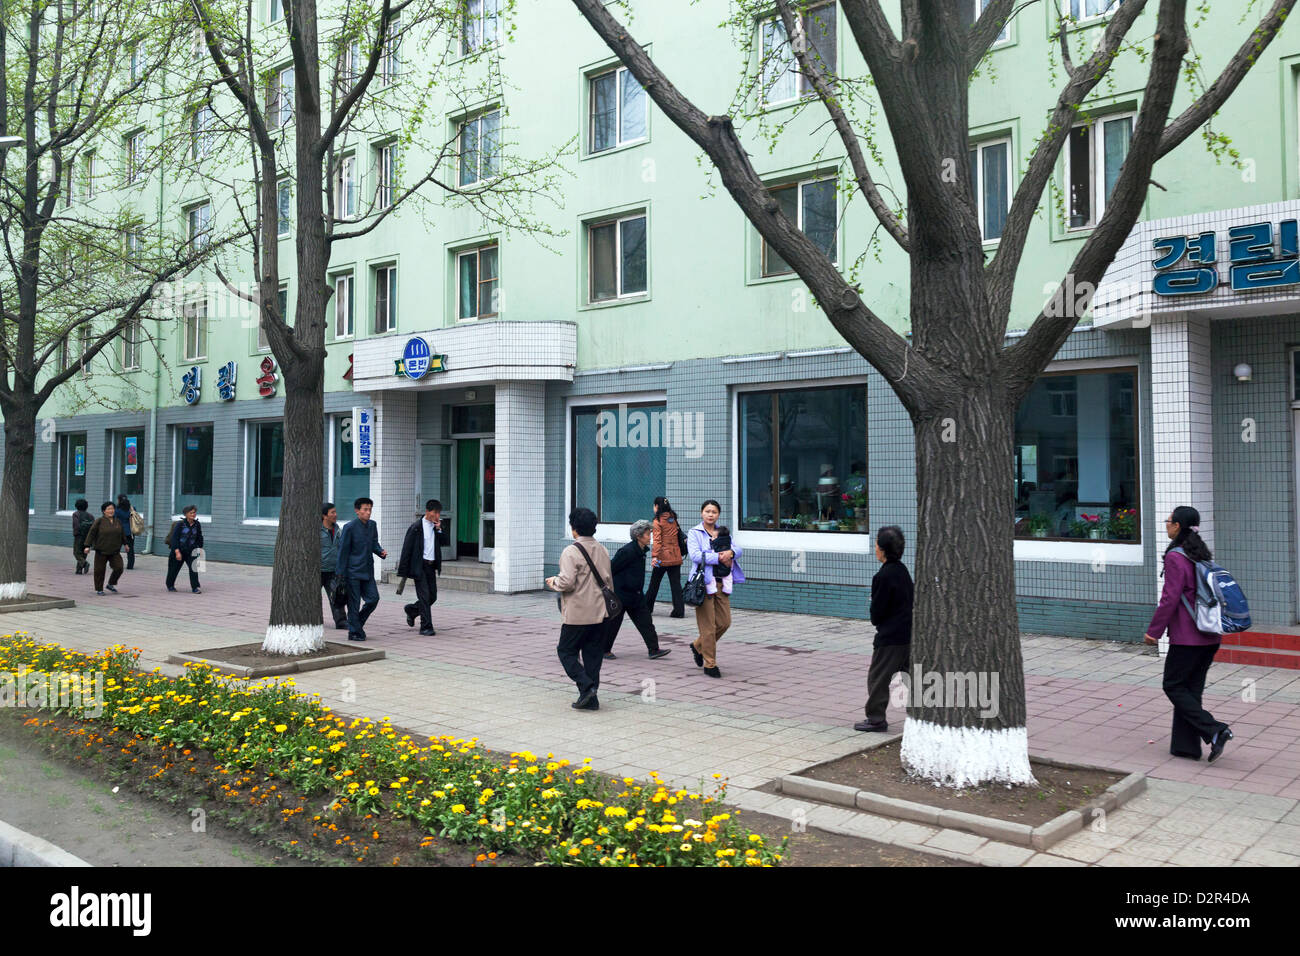 Typical city street scene, Pyongyang, Democratic People's Republic of Korea (DPRK), North Korea, Asia - Stock Image